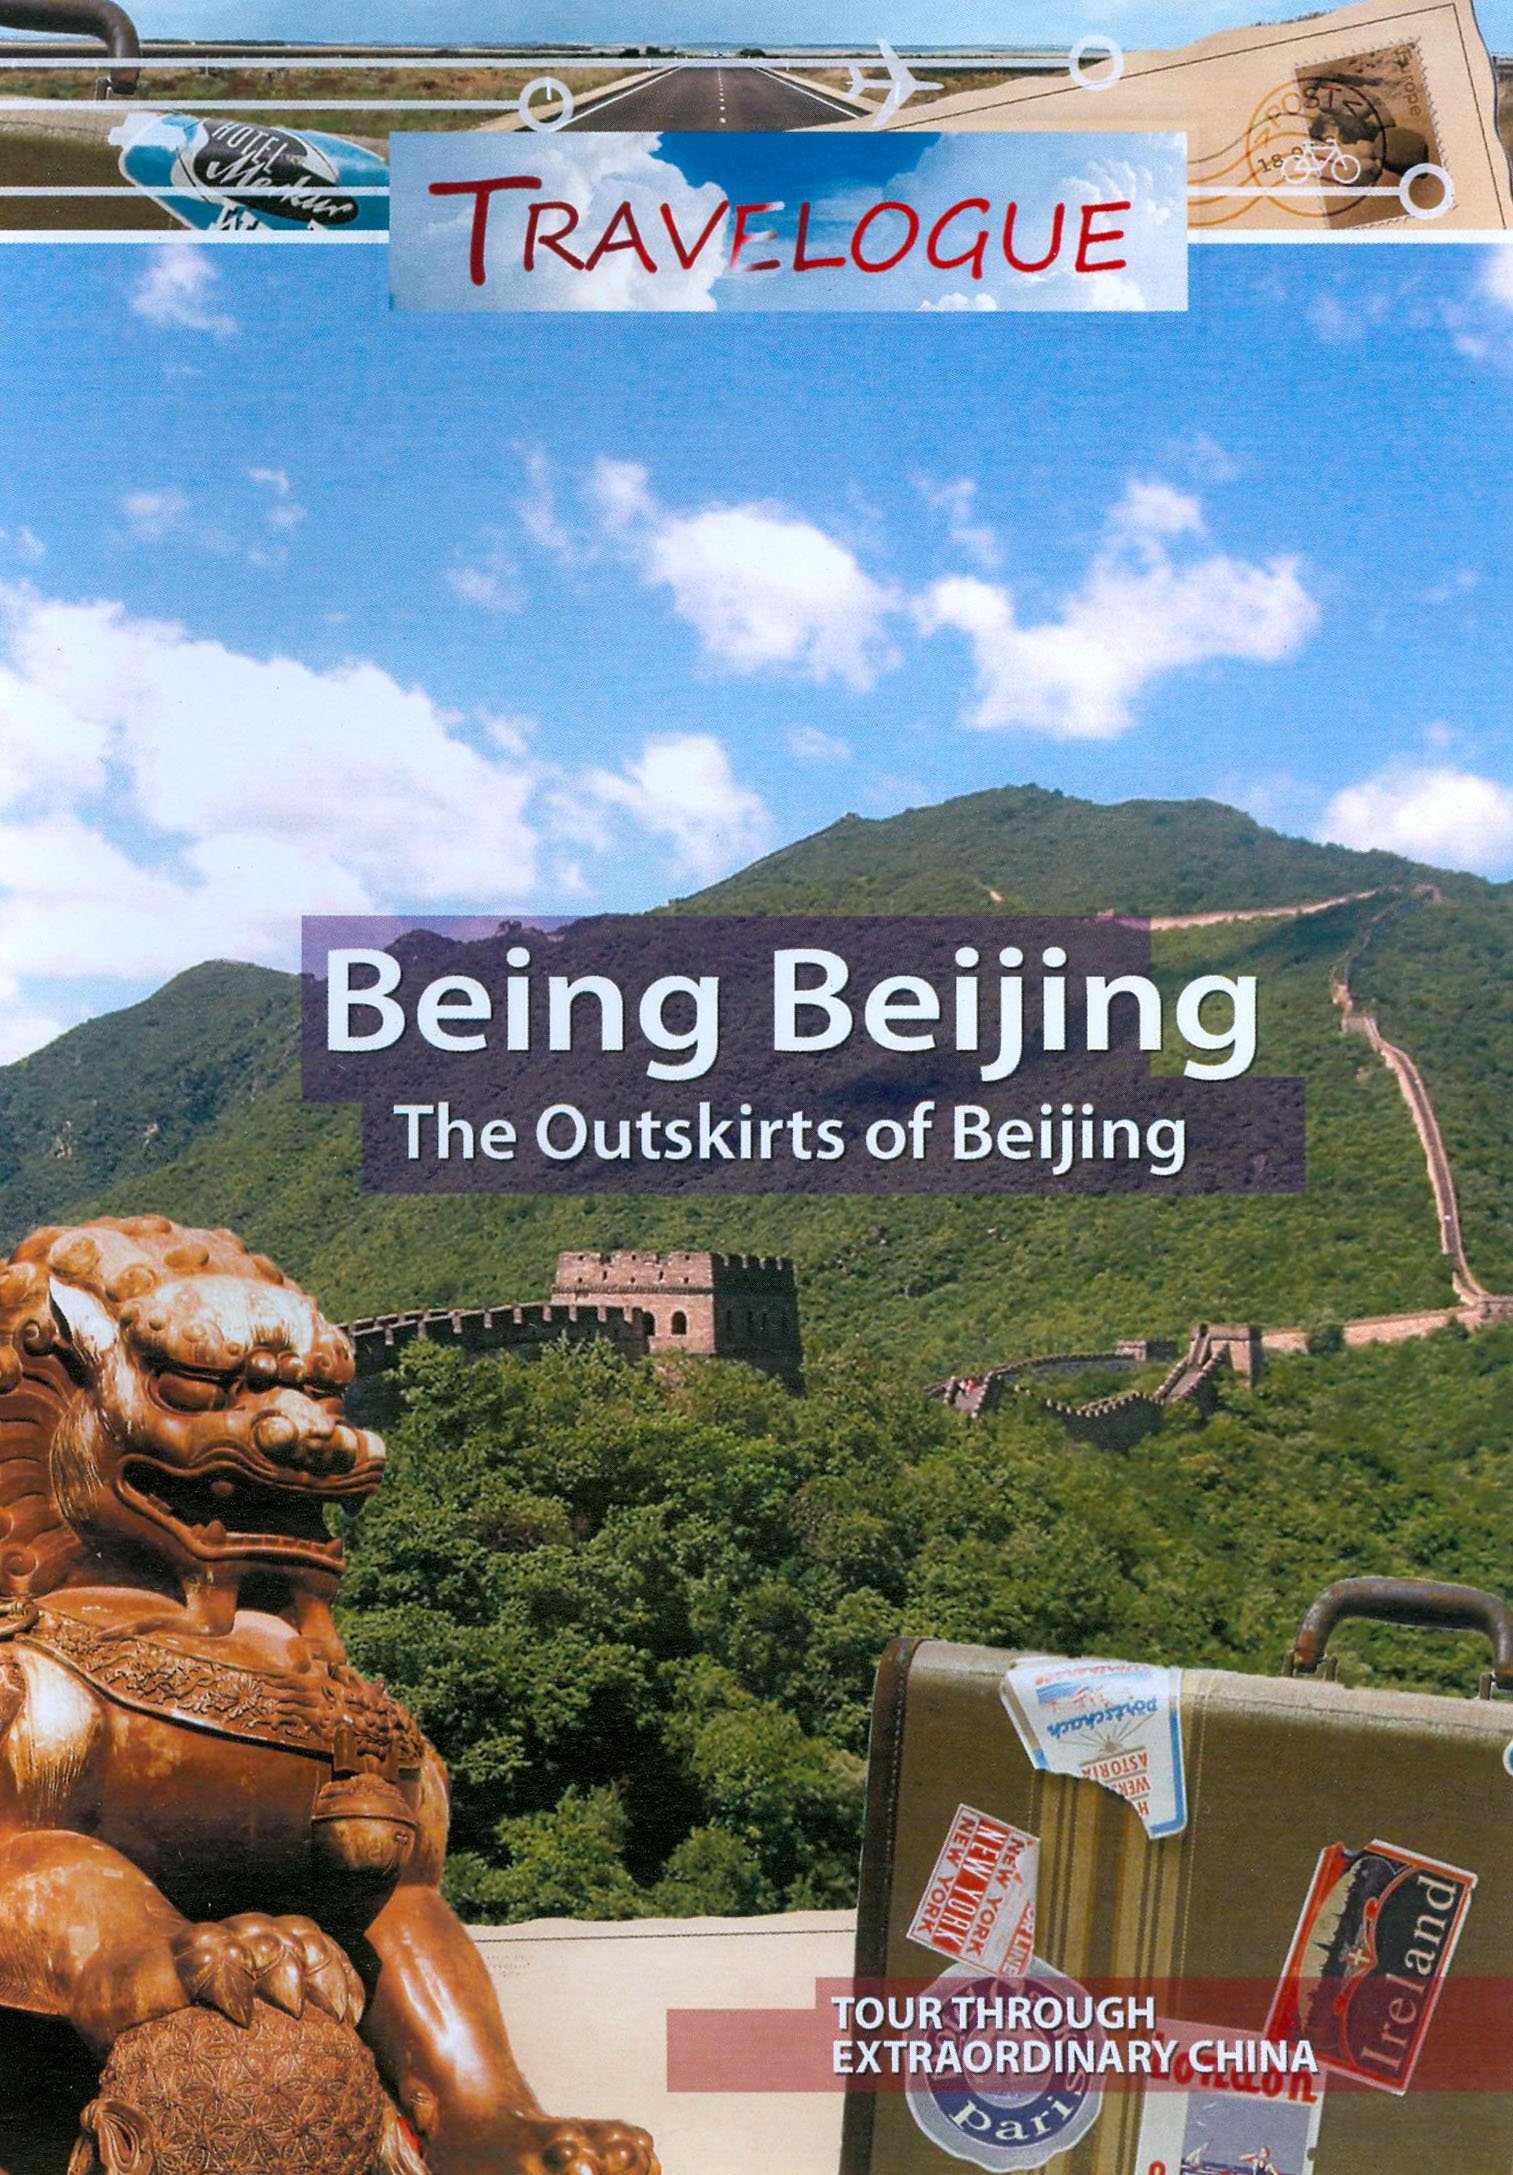 Travelogue 196: Being Beijing, The Outskirts of Beijing